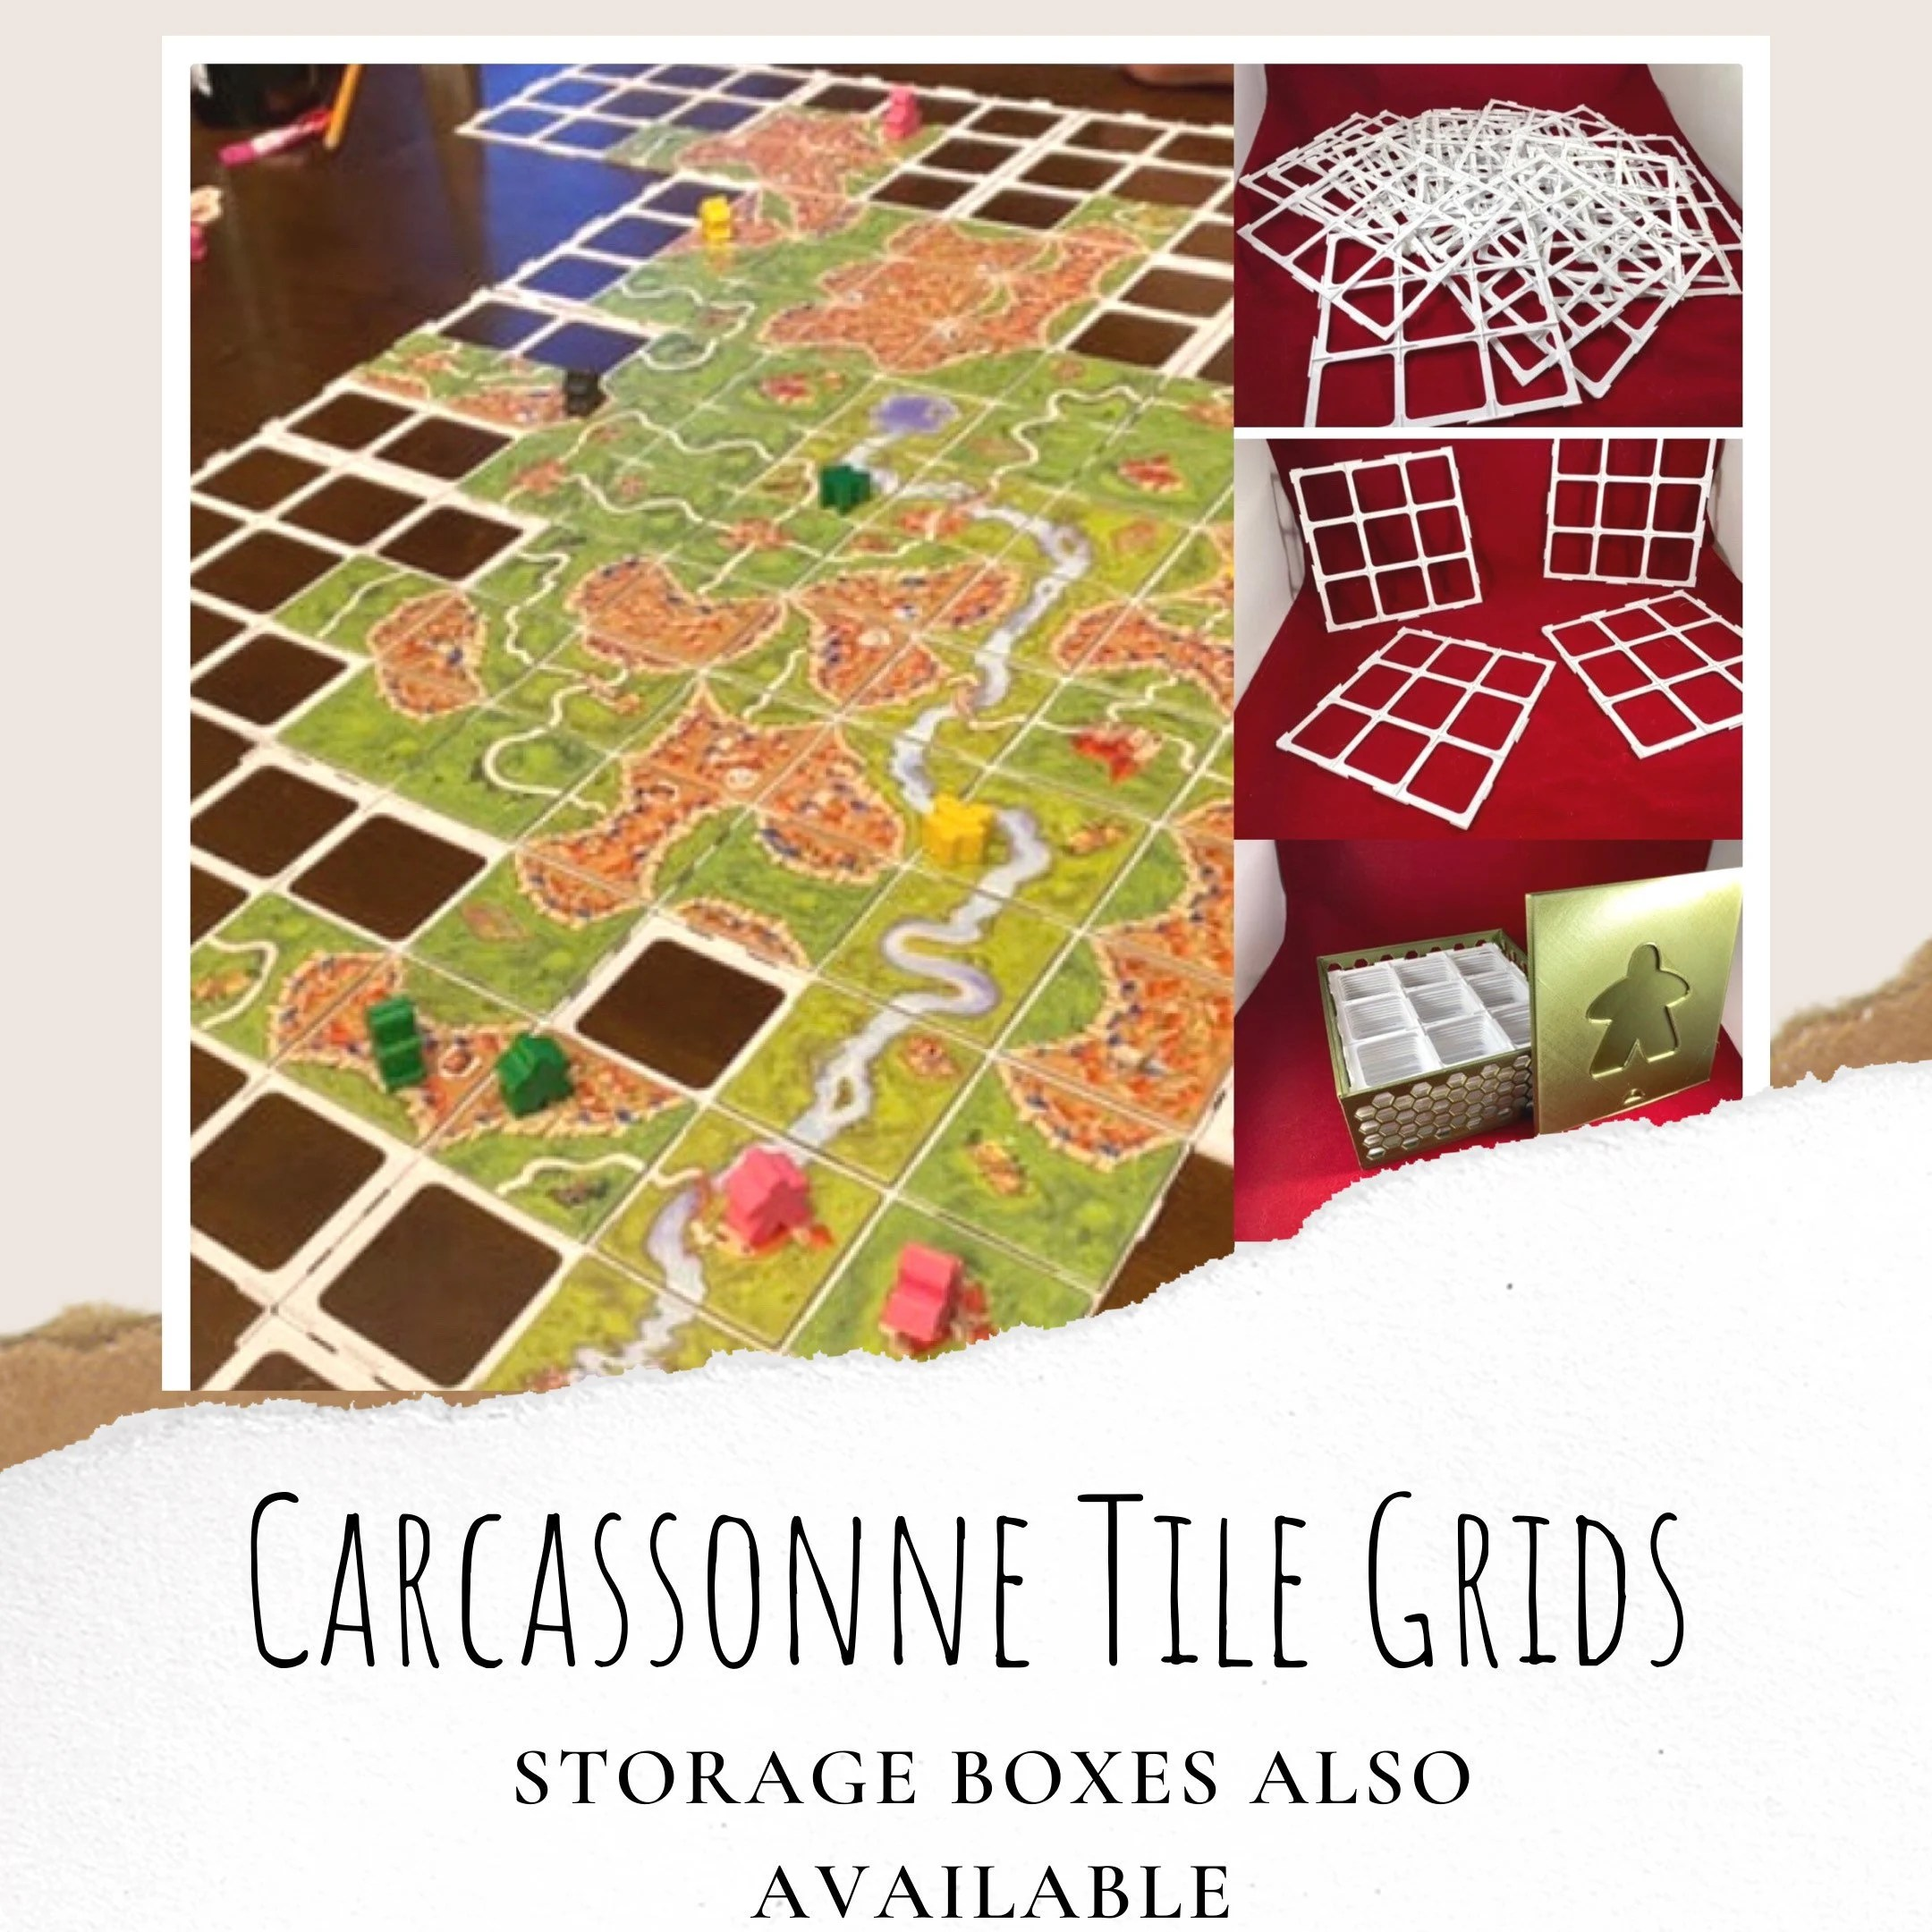 carcassonne board game tile grids carcassonne game upgrade carcassonne game tiles board game upgrade board game enhancement game pieces